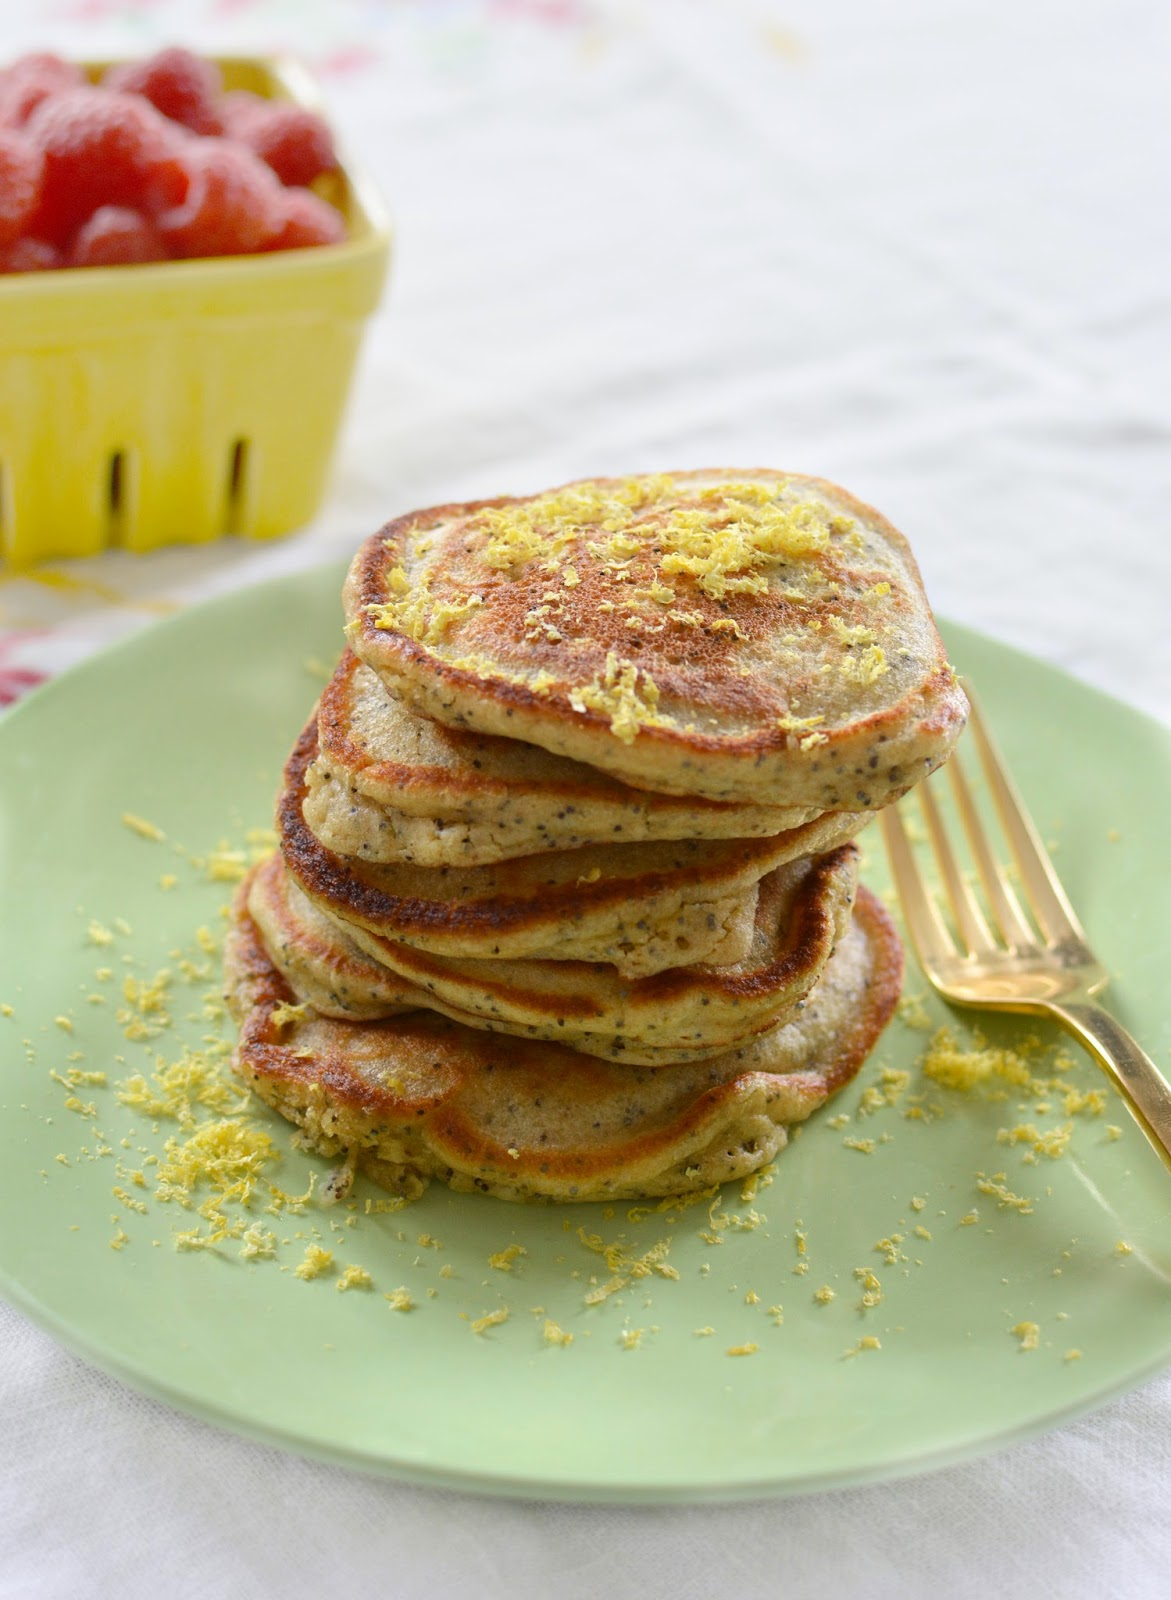 ... in HD: Recipe :: Buttermilk, Lemon, and Poppy Seed Quinoa Pancakes